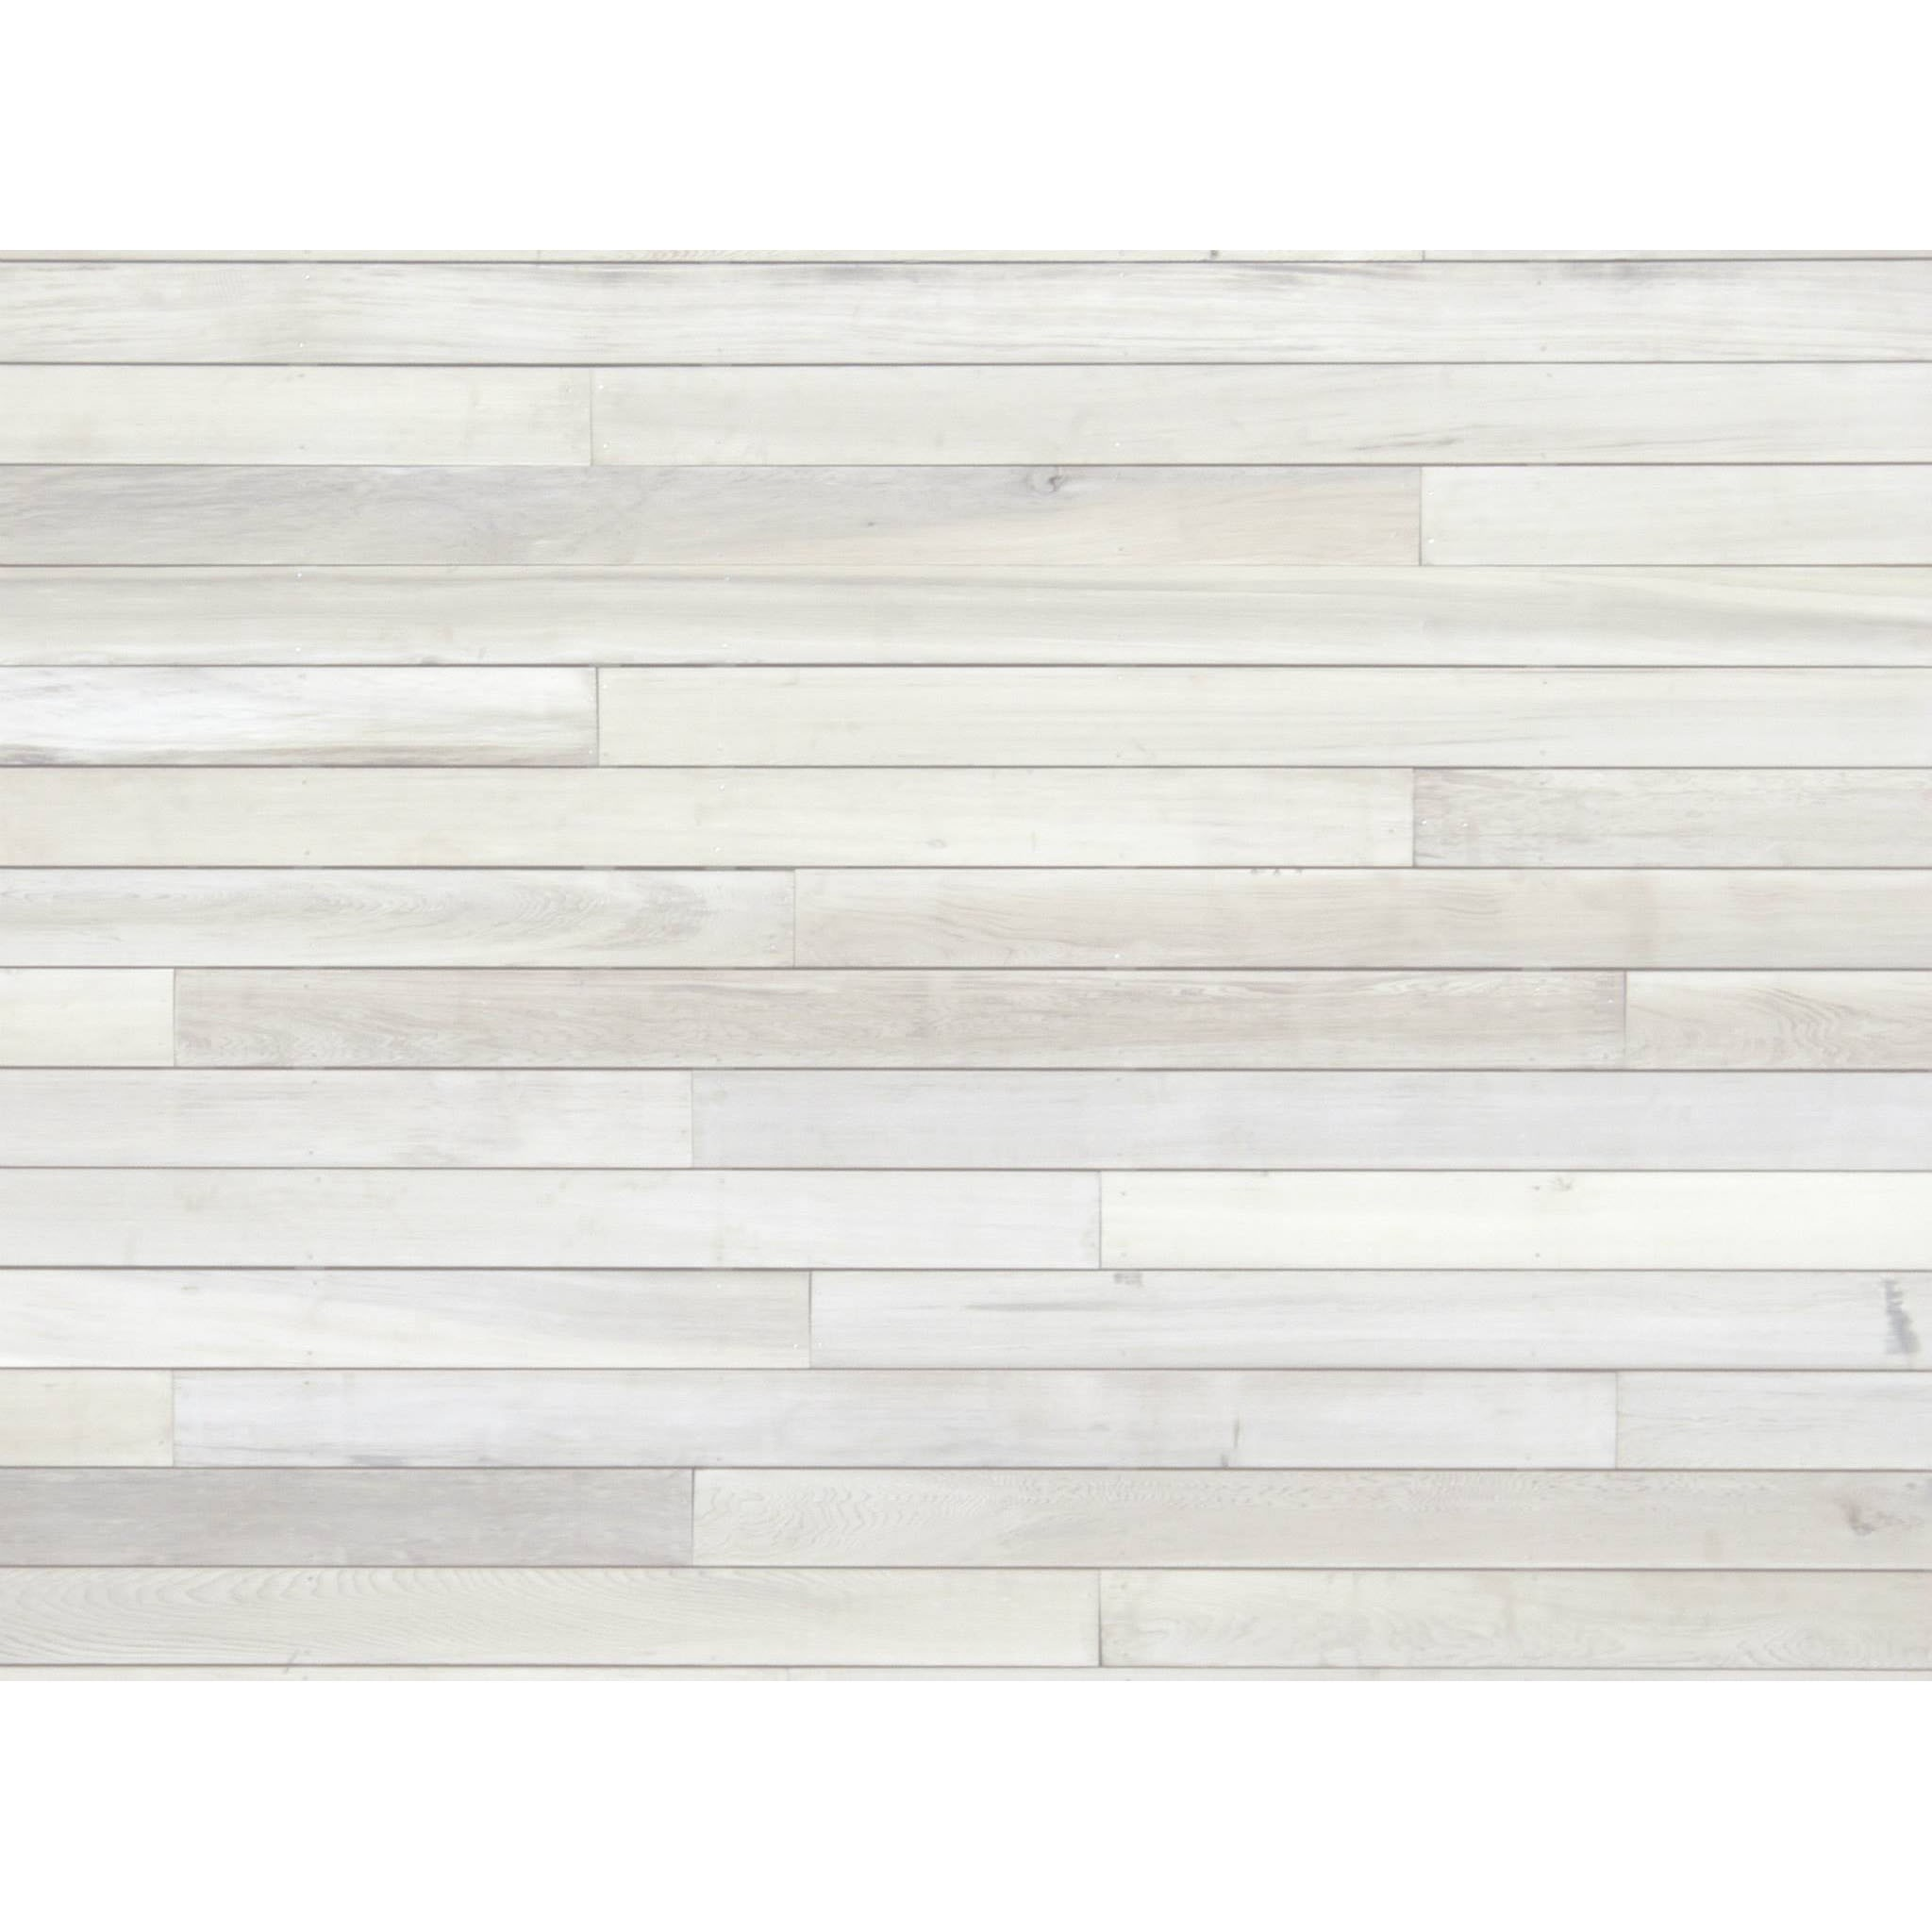 white wood floor texture. Outstanding White Wood Floor Texture Pictures  Exterior ideas 3D